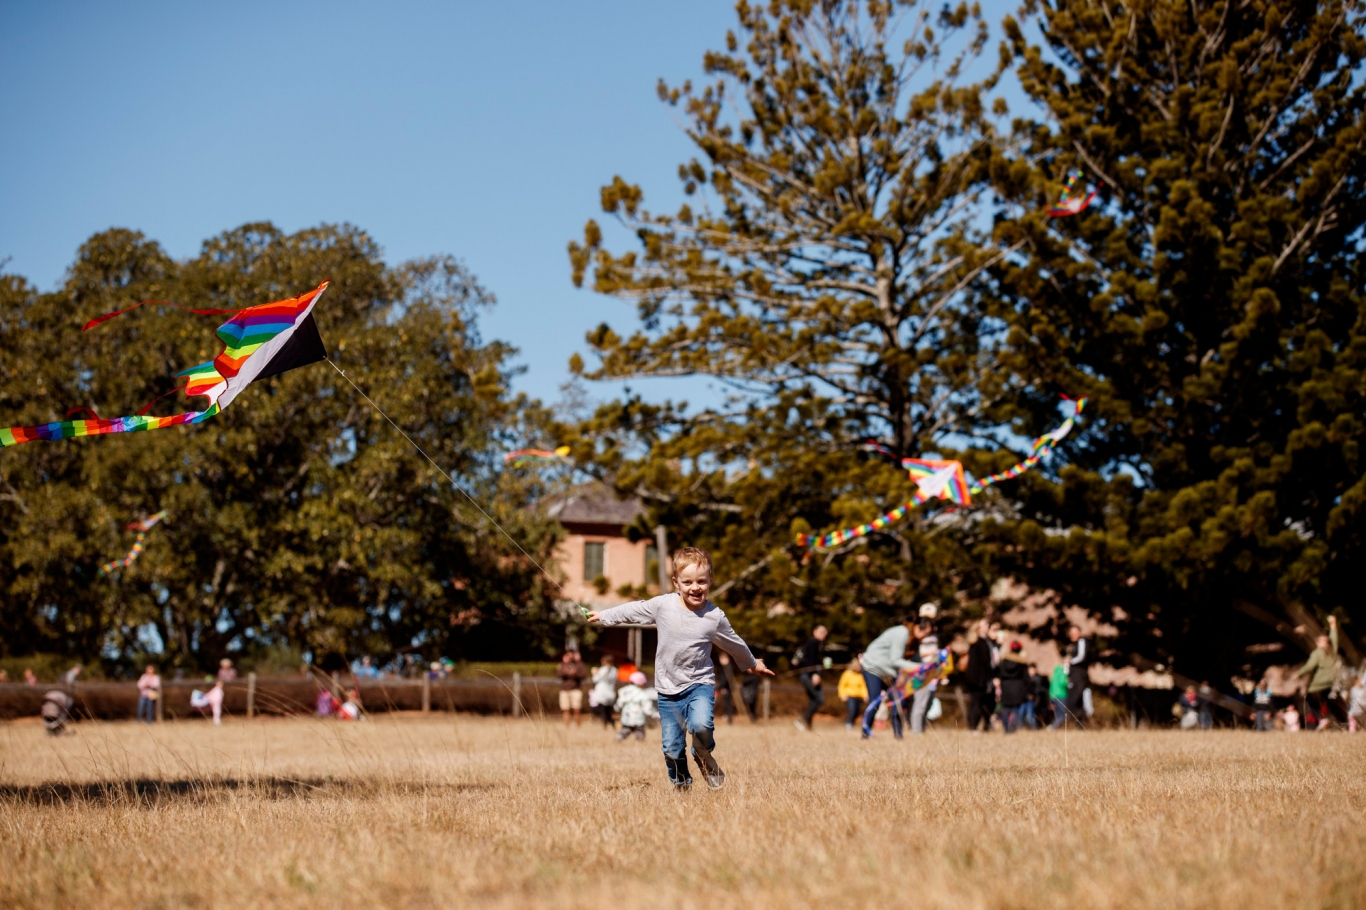 Child running with flying kite in paddock, with trees and buildings behind.